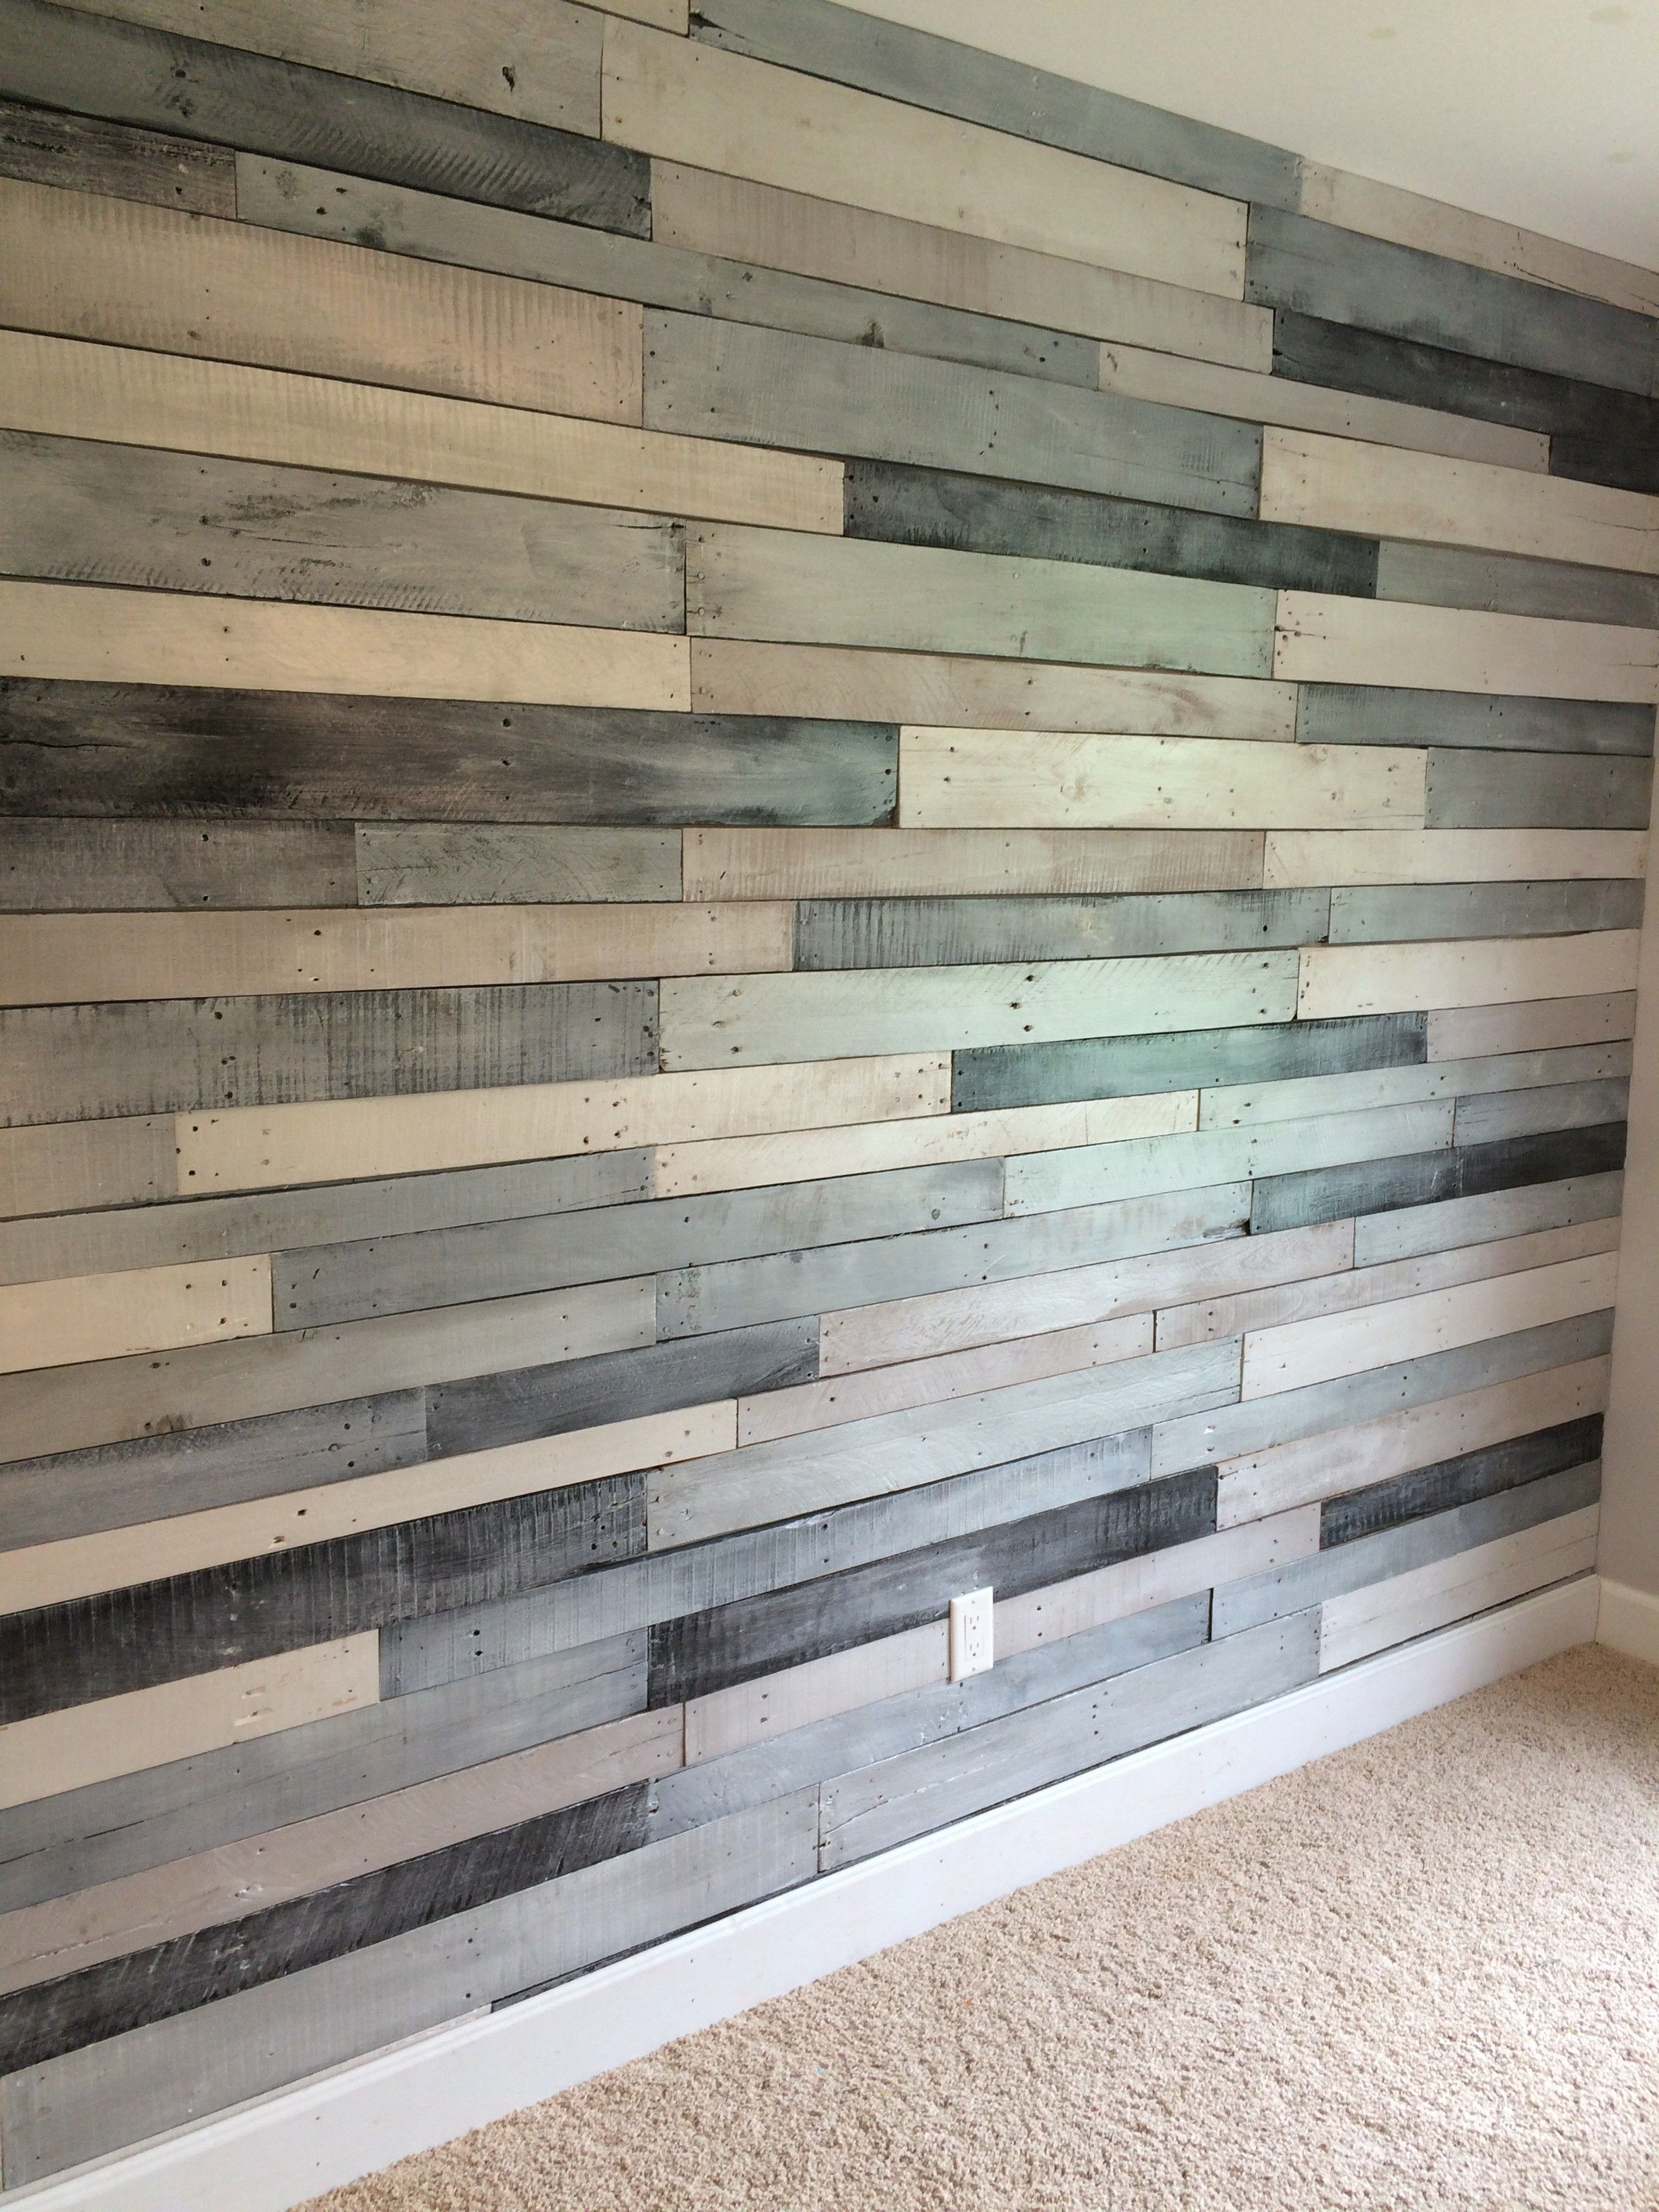 100 Diy Pallet Wall Ideas For Your Apartment The Urban Interior Wood Pallet Wall Diy Pallet Wall Wood Pallet Projects